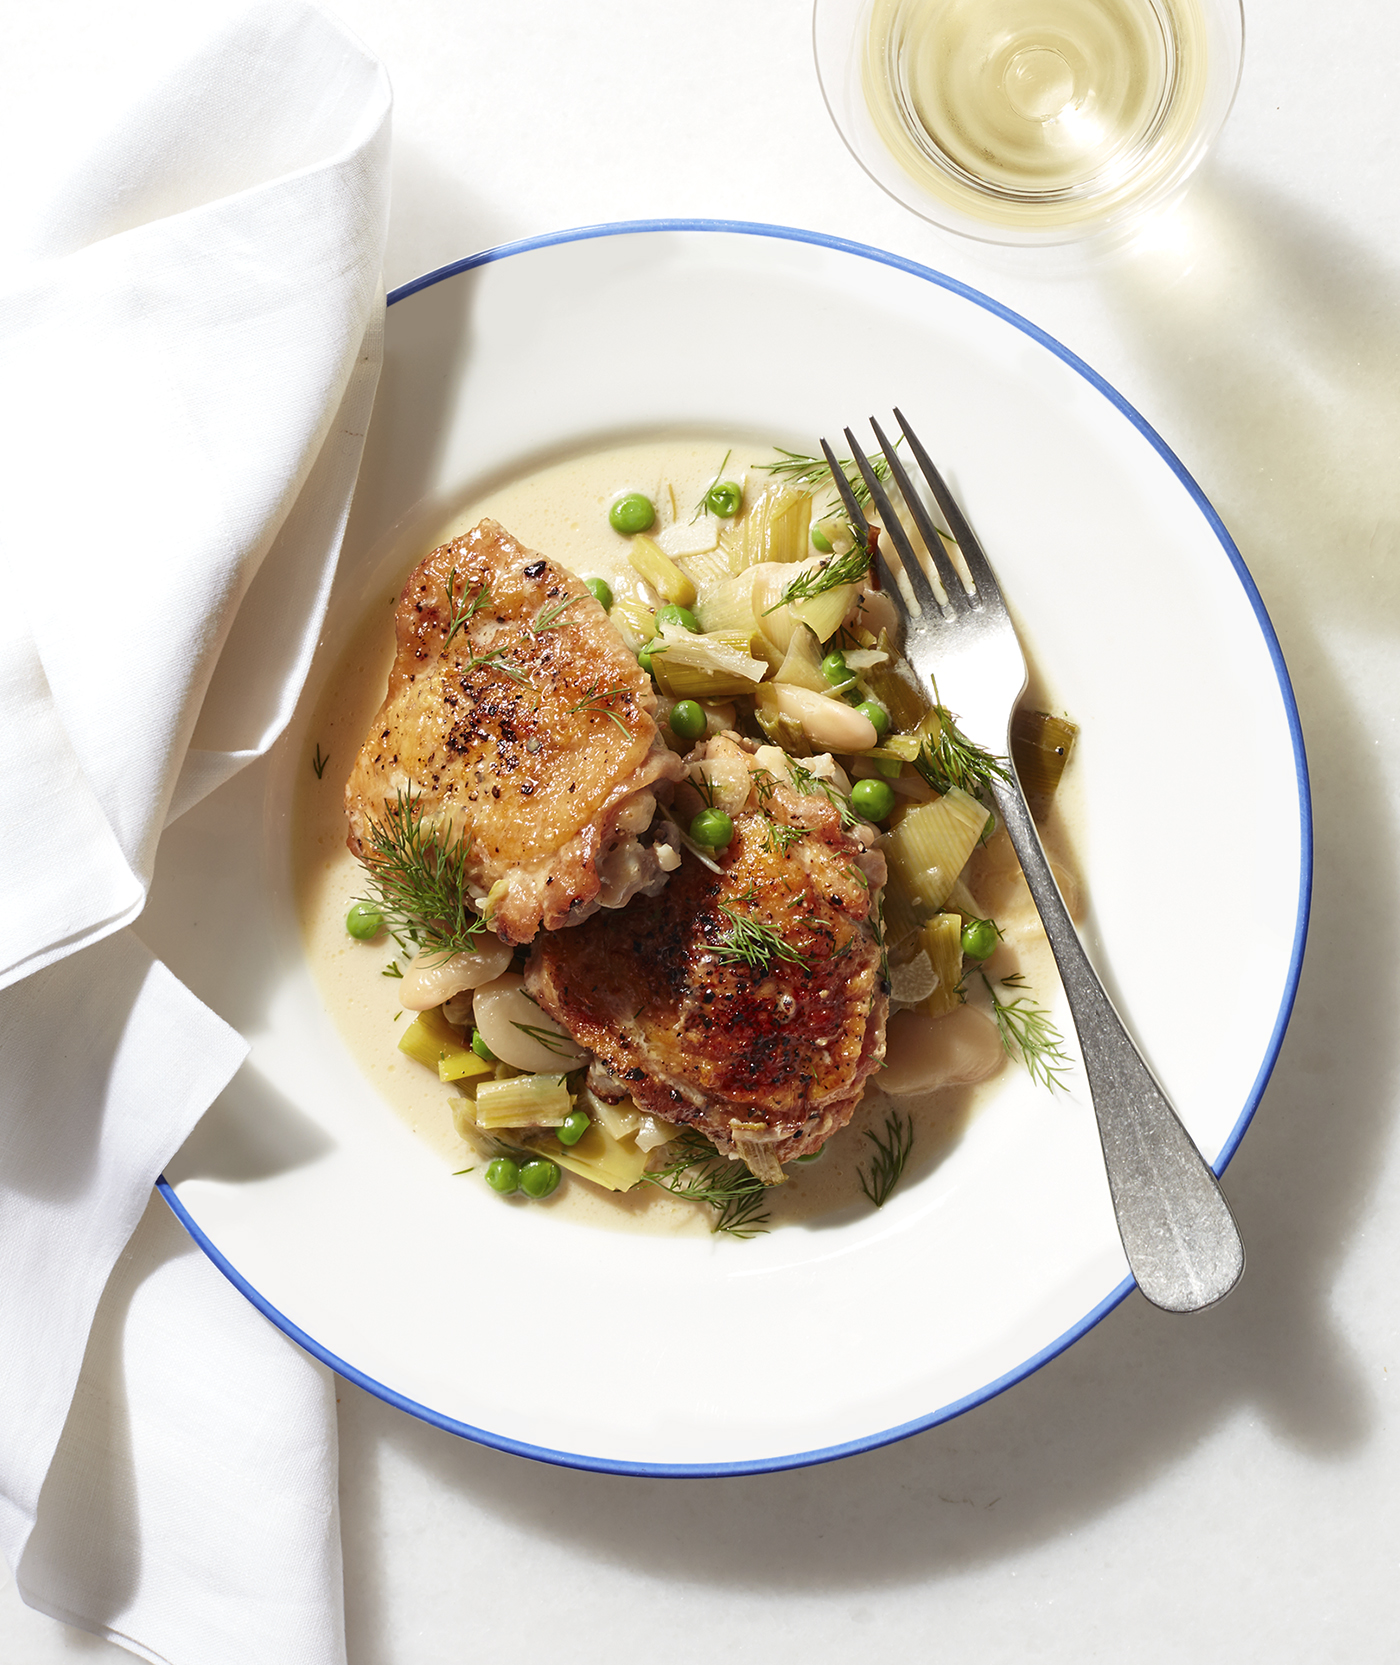 Braised Chicken With Leeks, Peas, and Butter Beans